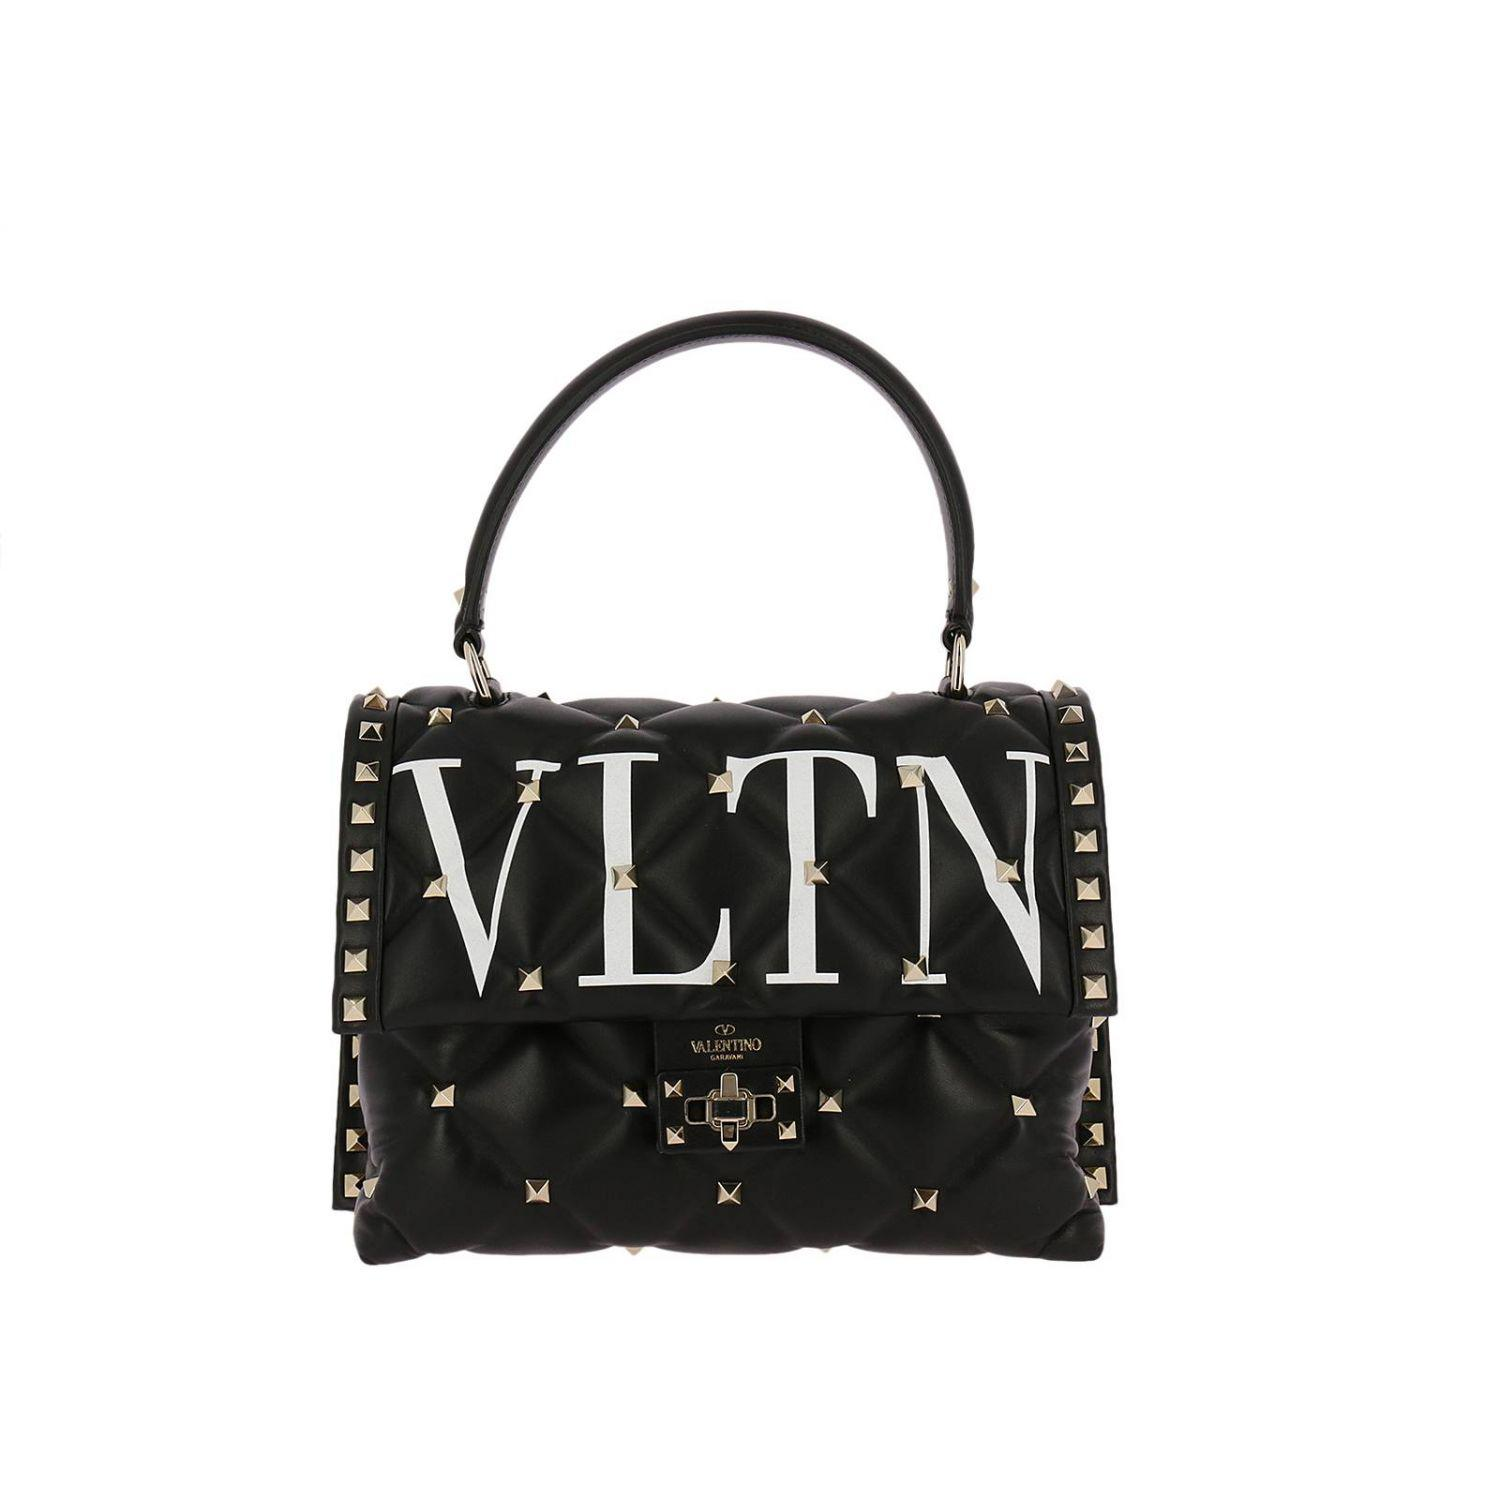 Valentino VLTN Smooth Leather Chain Shoulder Bag cmoFB